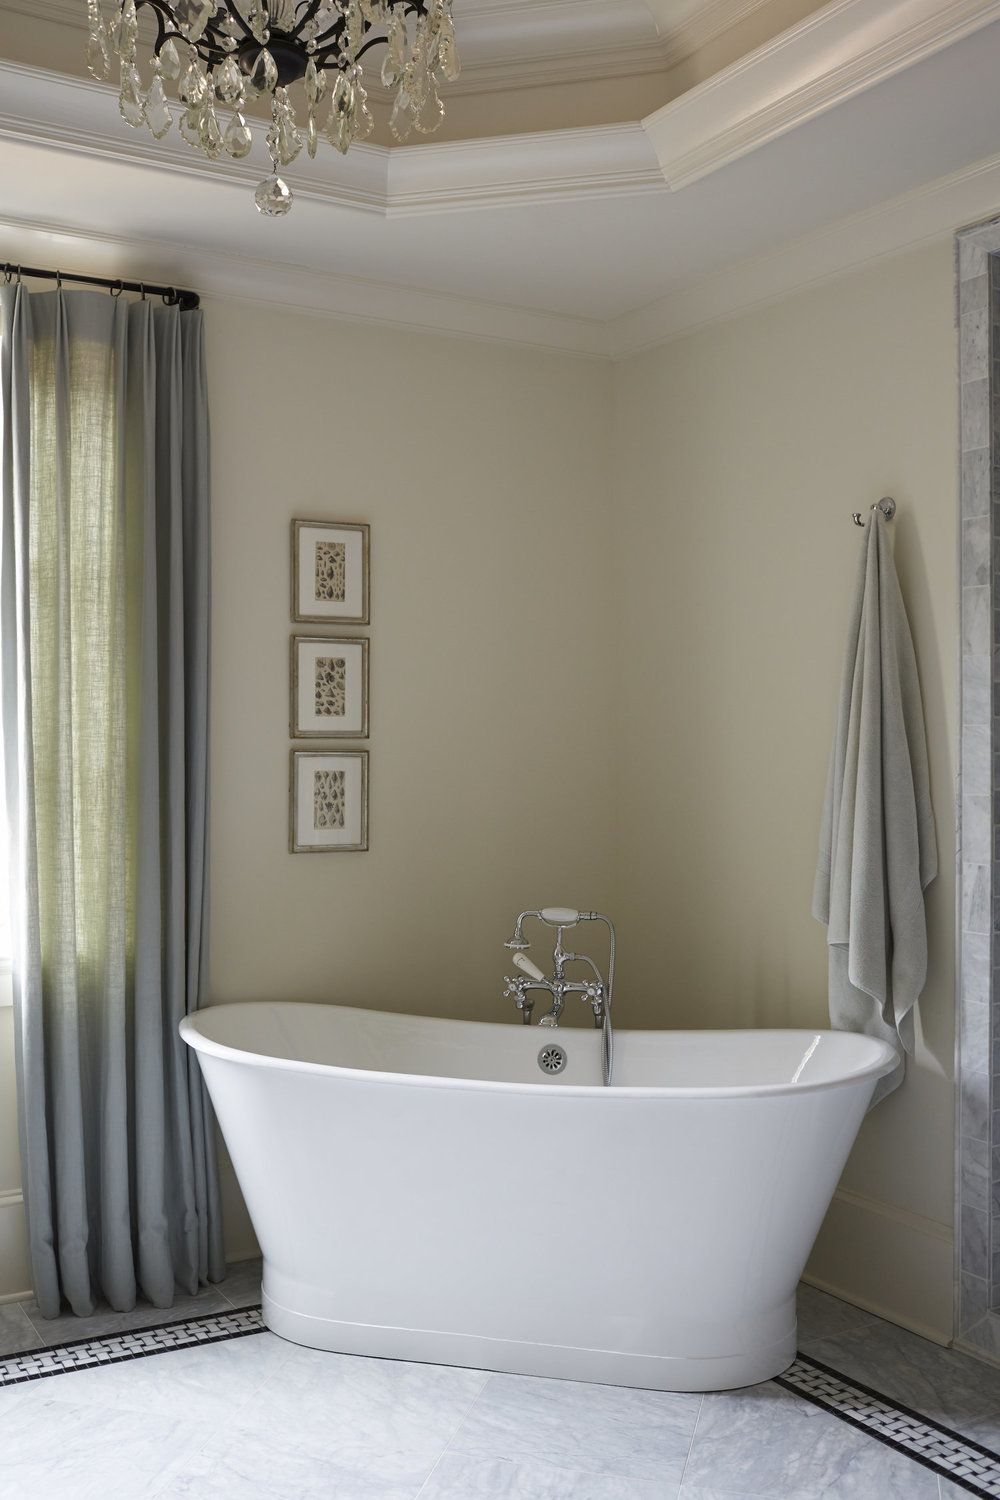 White stand alone bath tub placed in corner of bathroom | Amy Meier ...